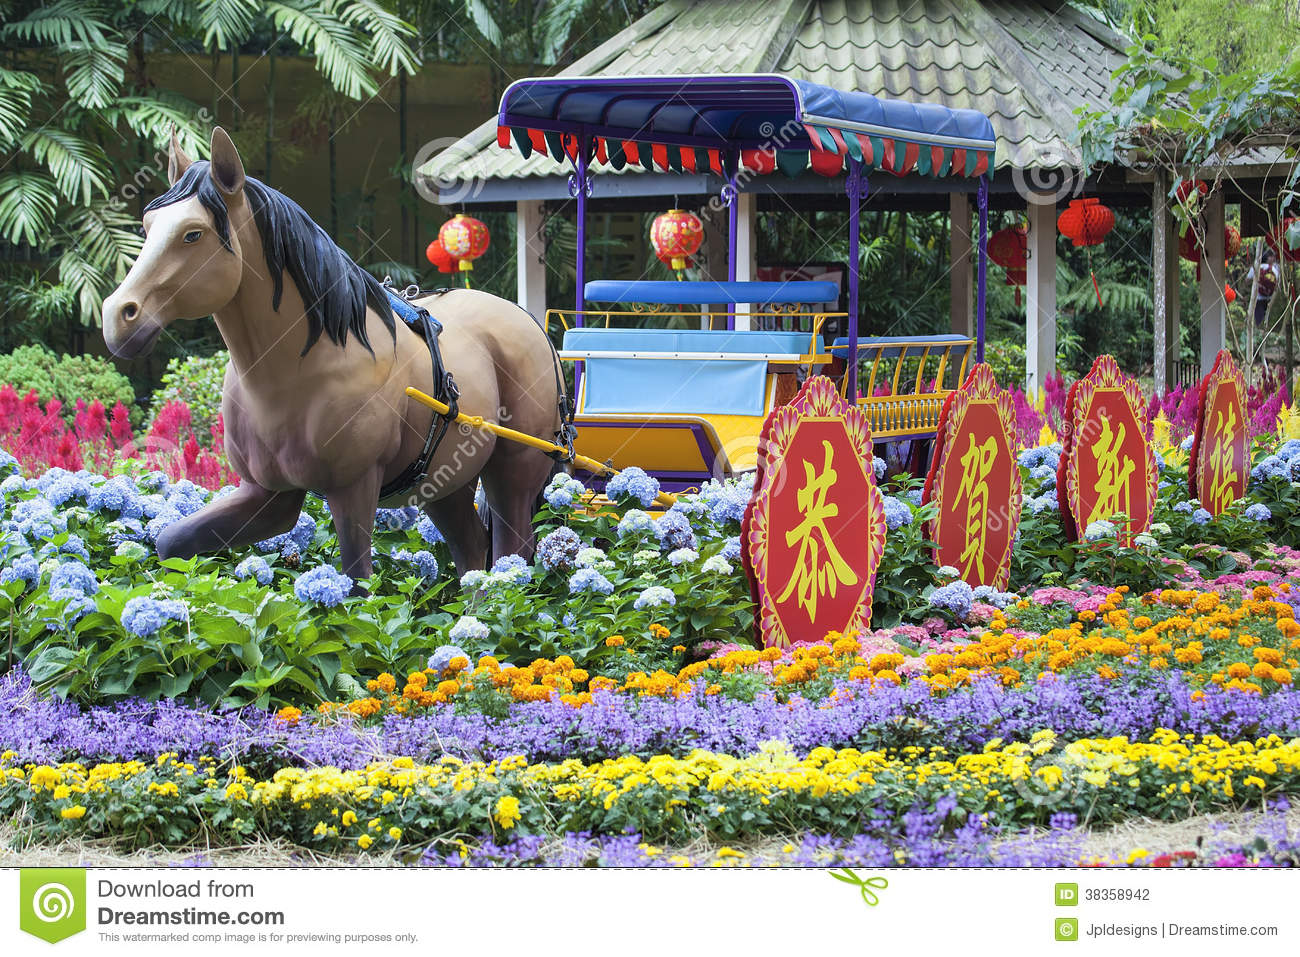 Chinese New Year Horse Decoration In Singapore Garden